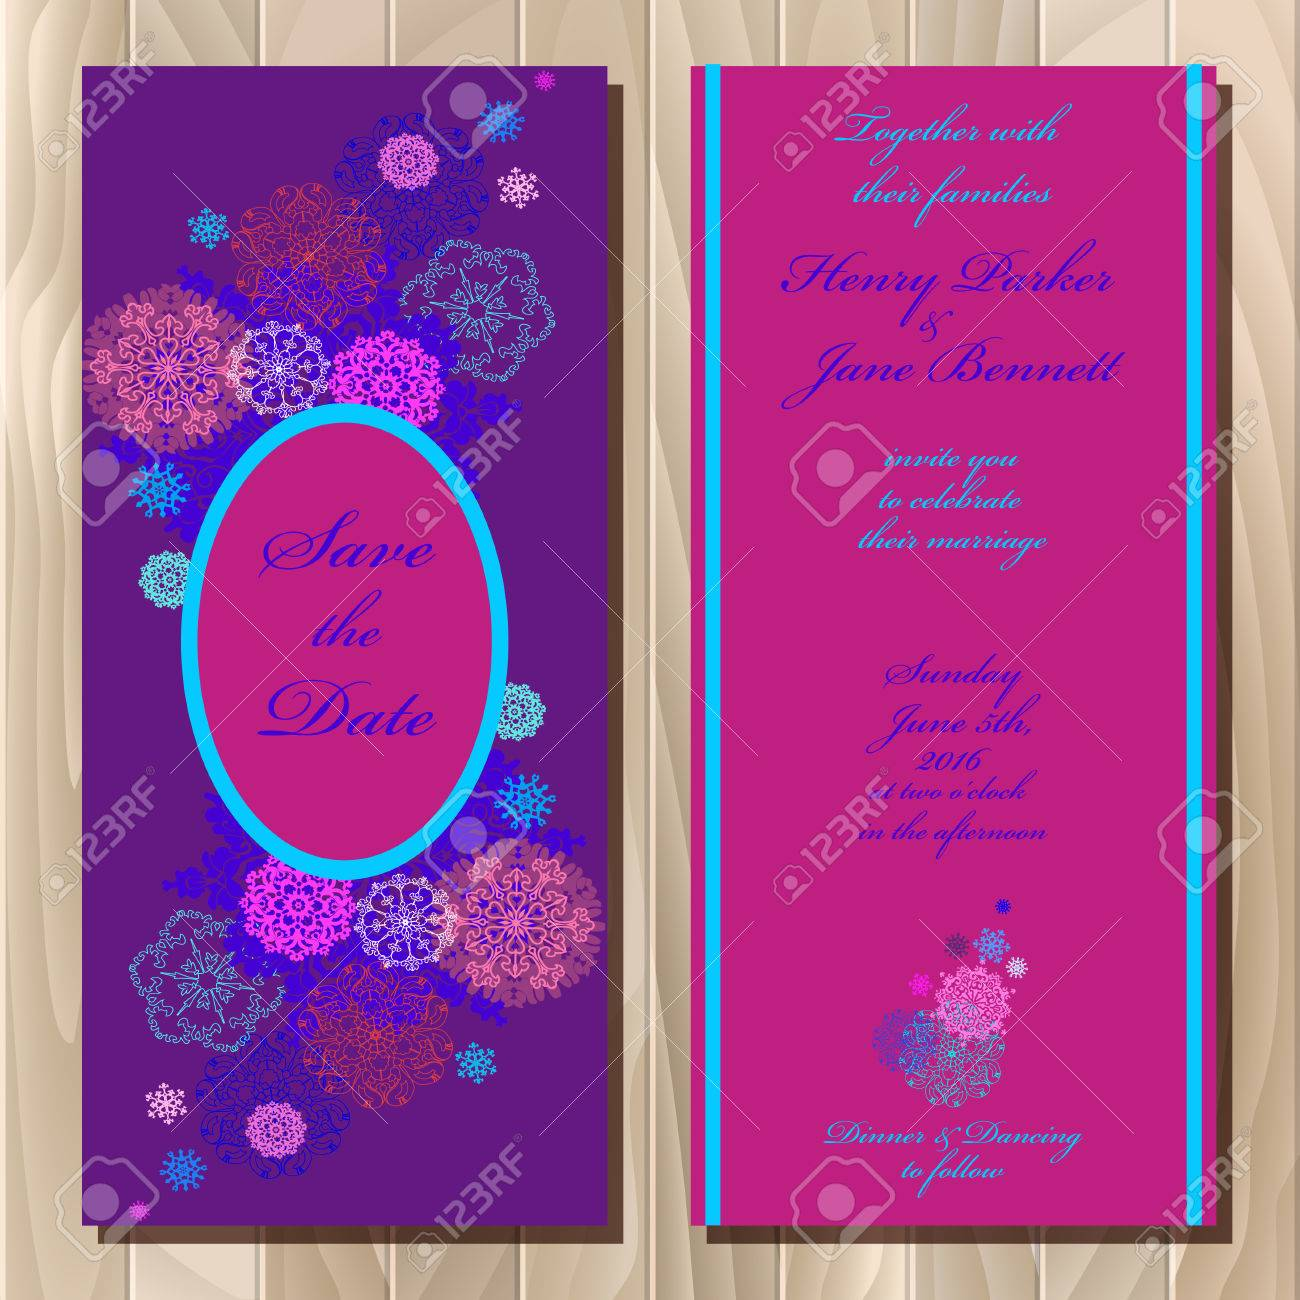 Pink And Blue Wedding Invitations Image Collections Party Invitation Card With Red